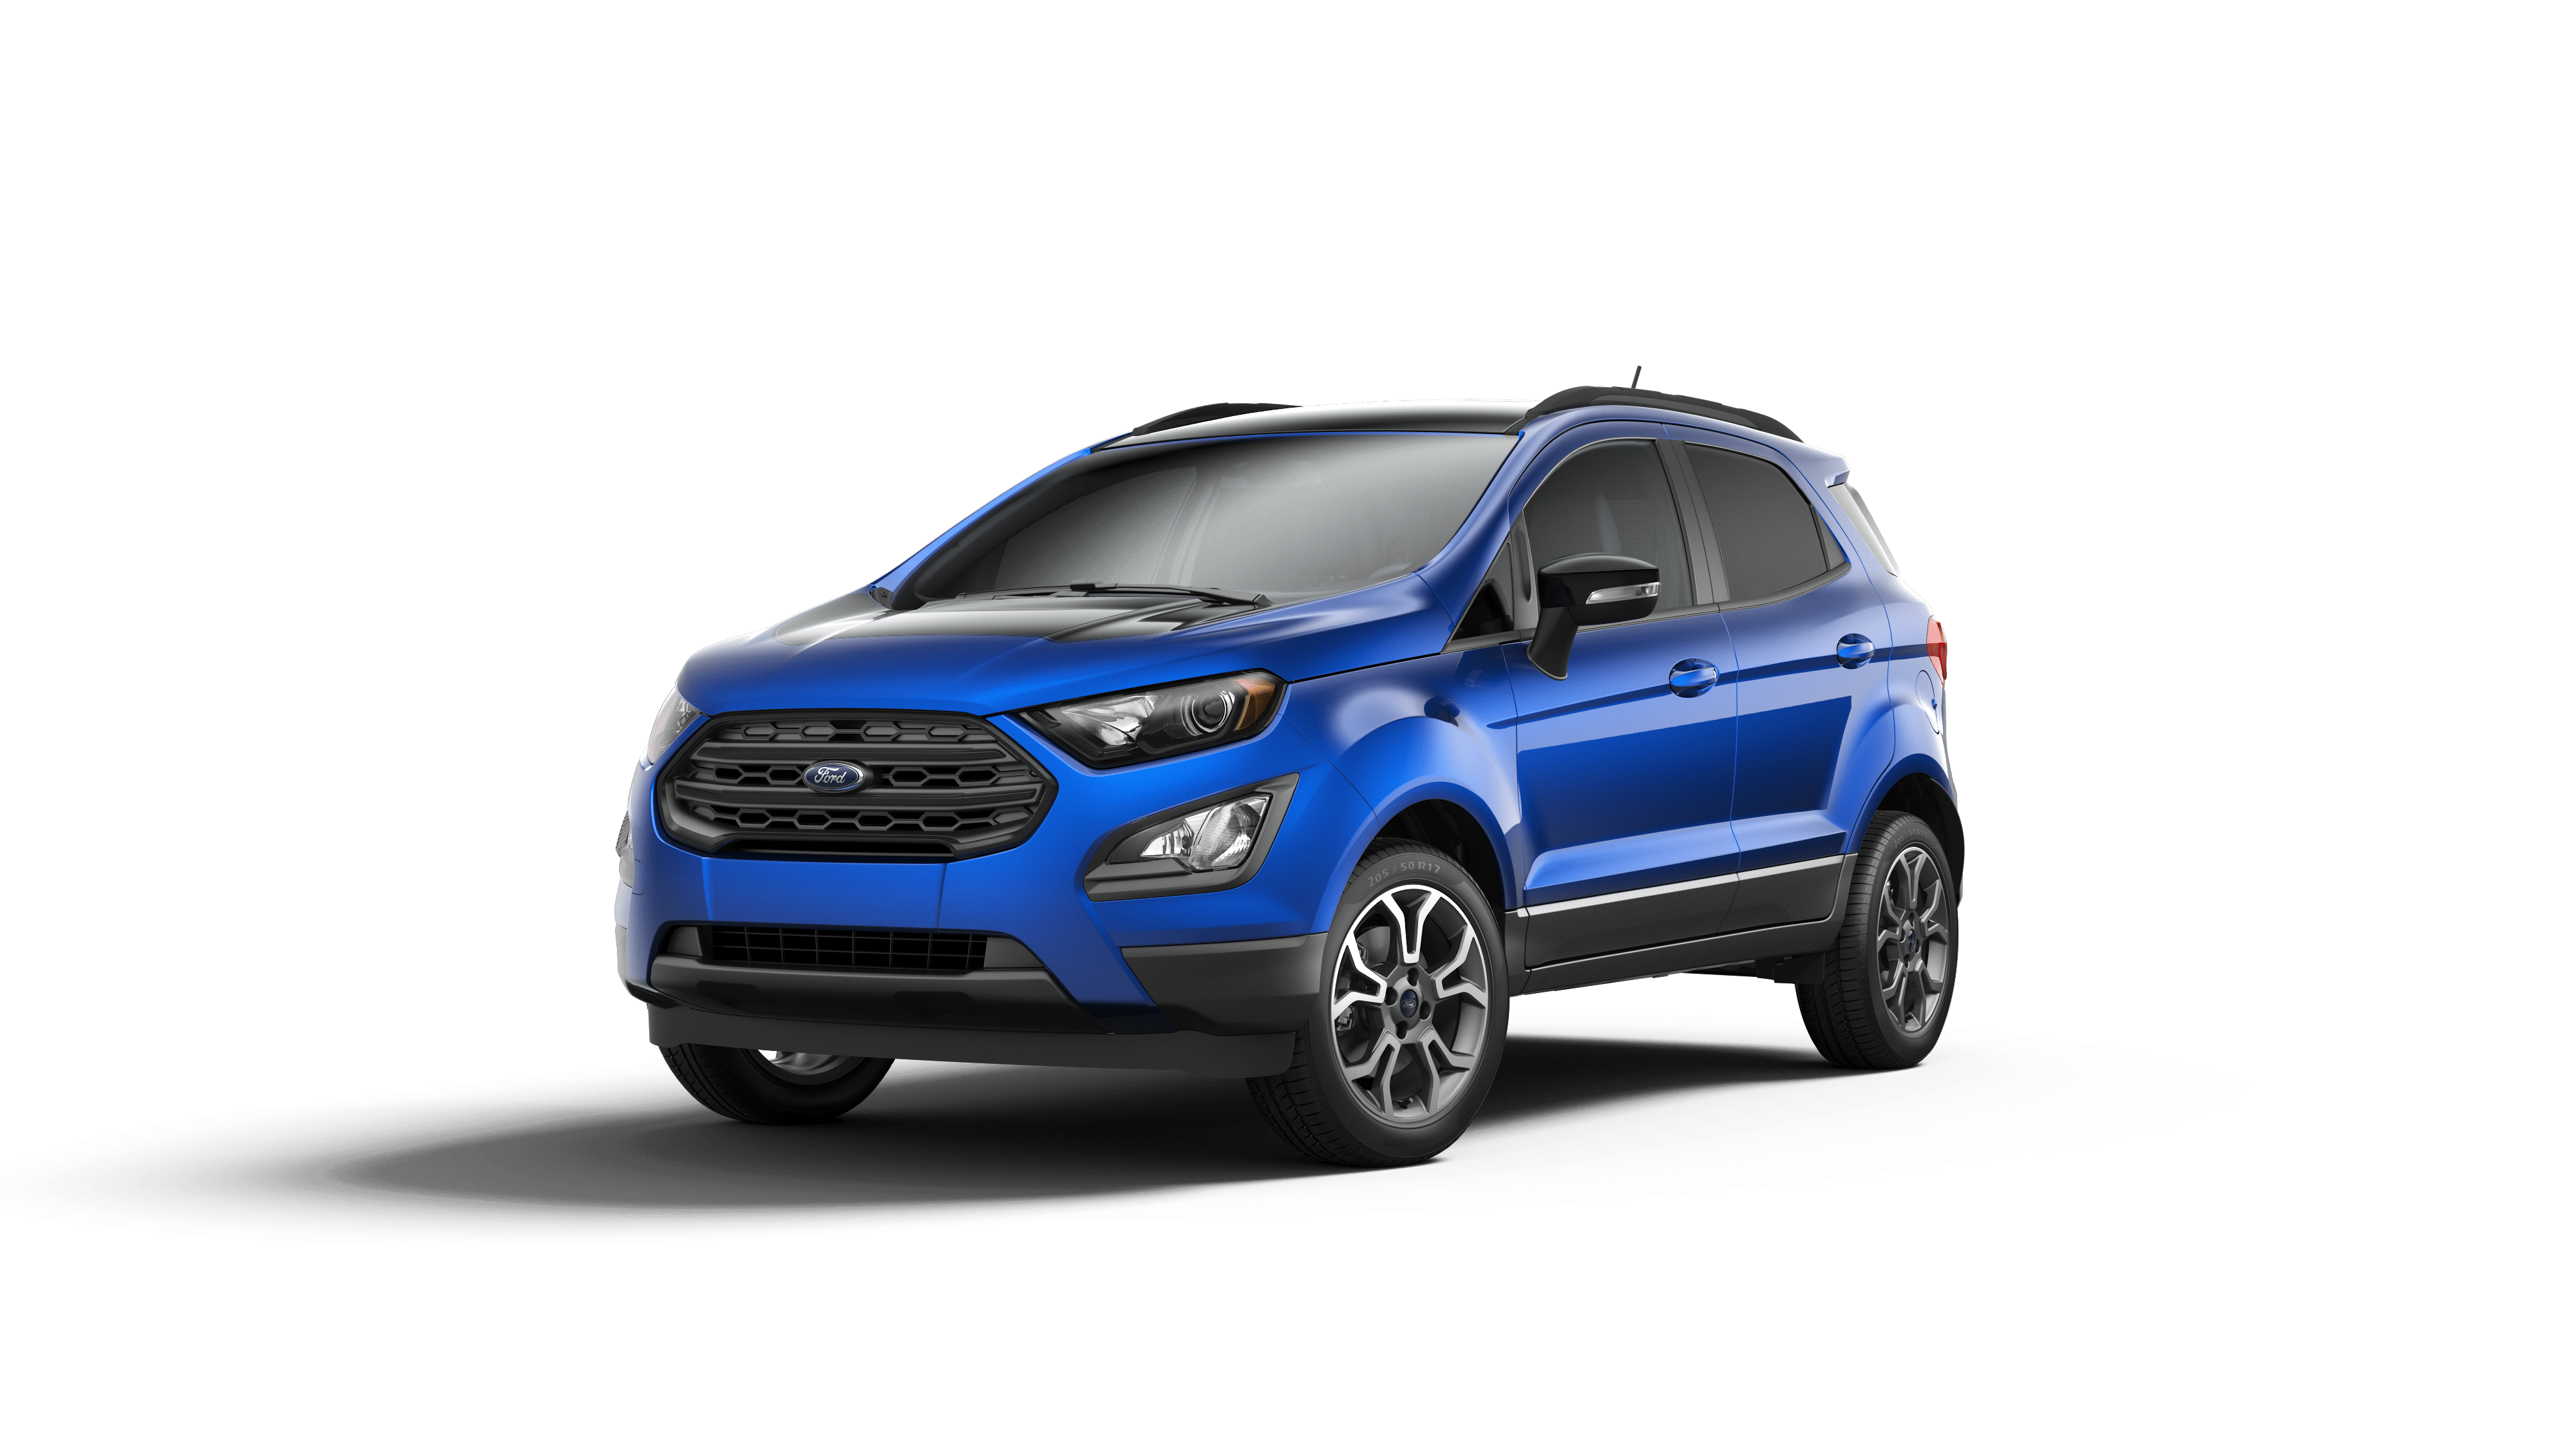 Ford Dealership Peoria Il >> 2019 Ford EcoSport for sale in East Peoria - MAJ6S3JL1KC252569 - Uftring Ford, Inc.